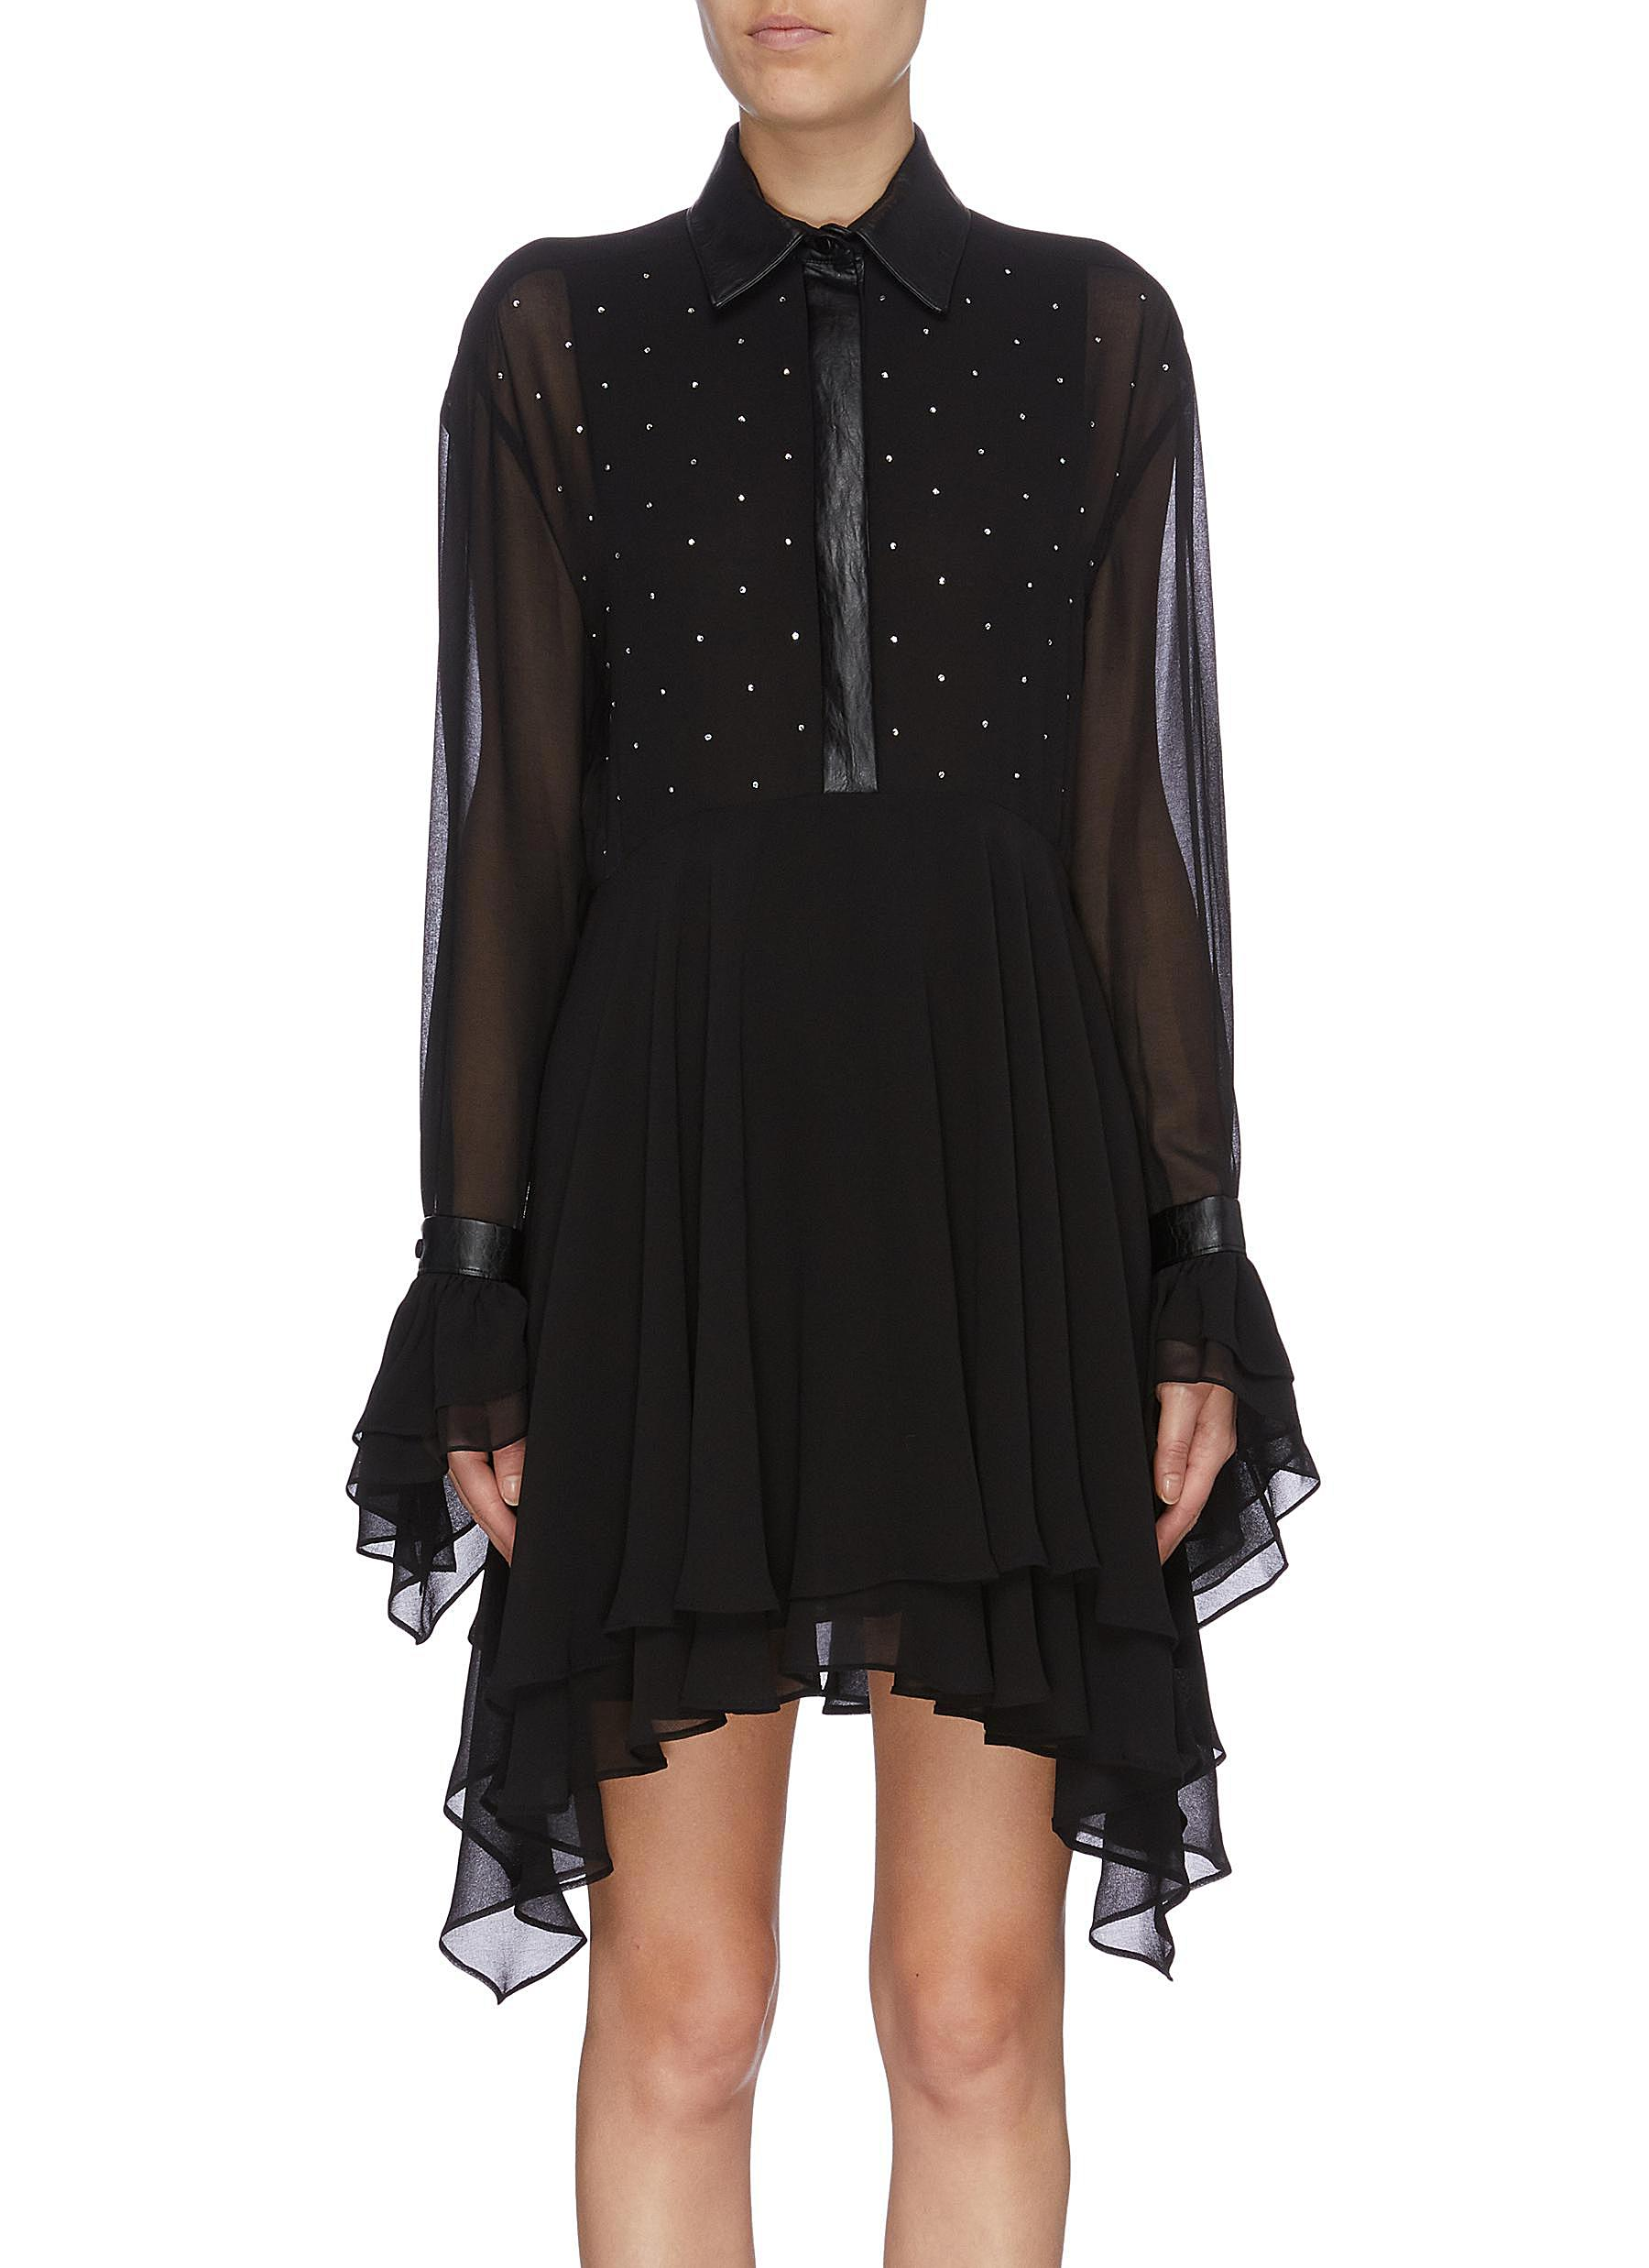 Strass embellished flared tiered georgette shirt dress by Philosophy Di Lorenzo Serafini